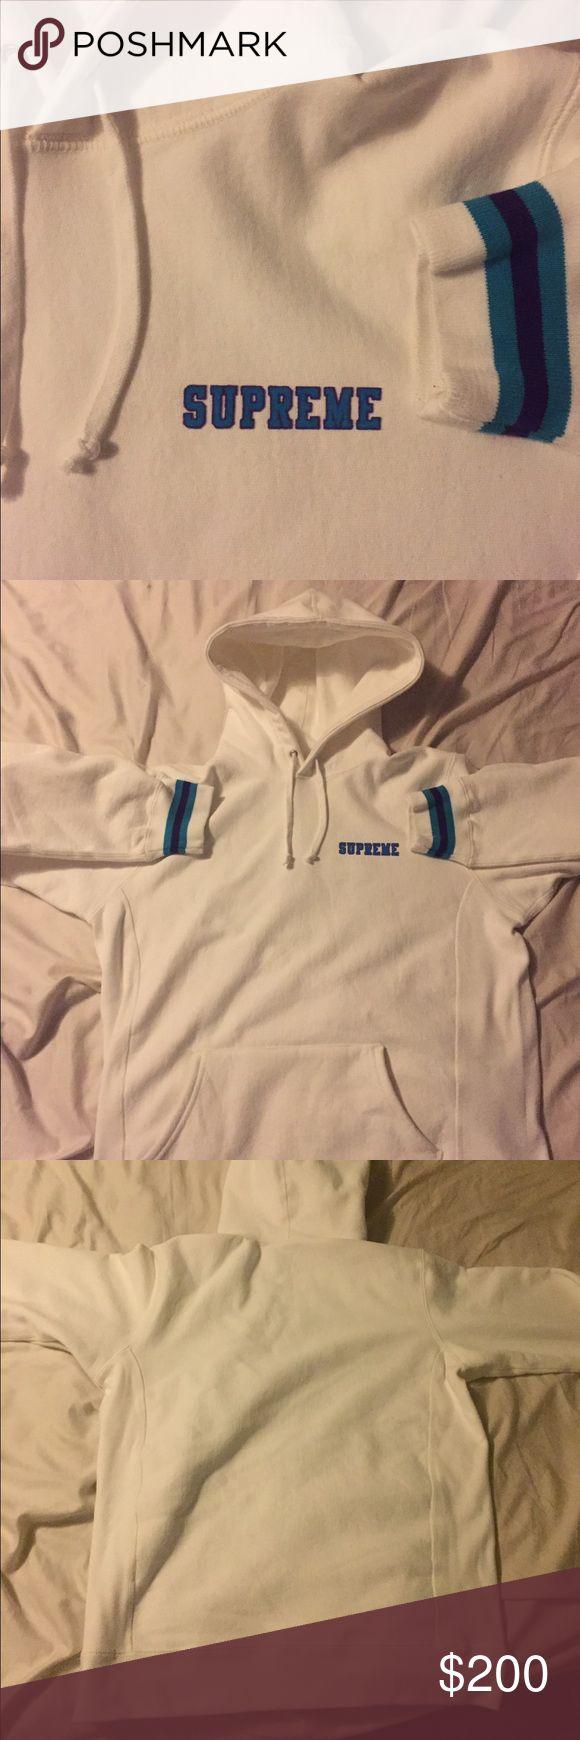 LARGE WHITE SUPREME HOODIE LARGE WHITE SUPREME HOODIE, LIKE NEW, WORN ONCE. GOT THE LAST 1 OF 5 IN THE STORE, SOLD OUT ONLINE. PRICE NEGOTIABLE. Supreme Shirts Sweatshirts & Hoodies